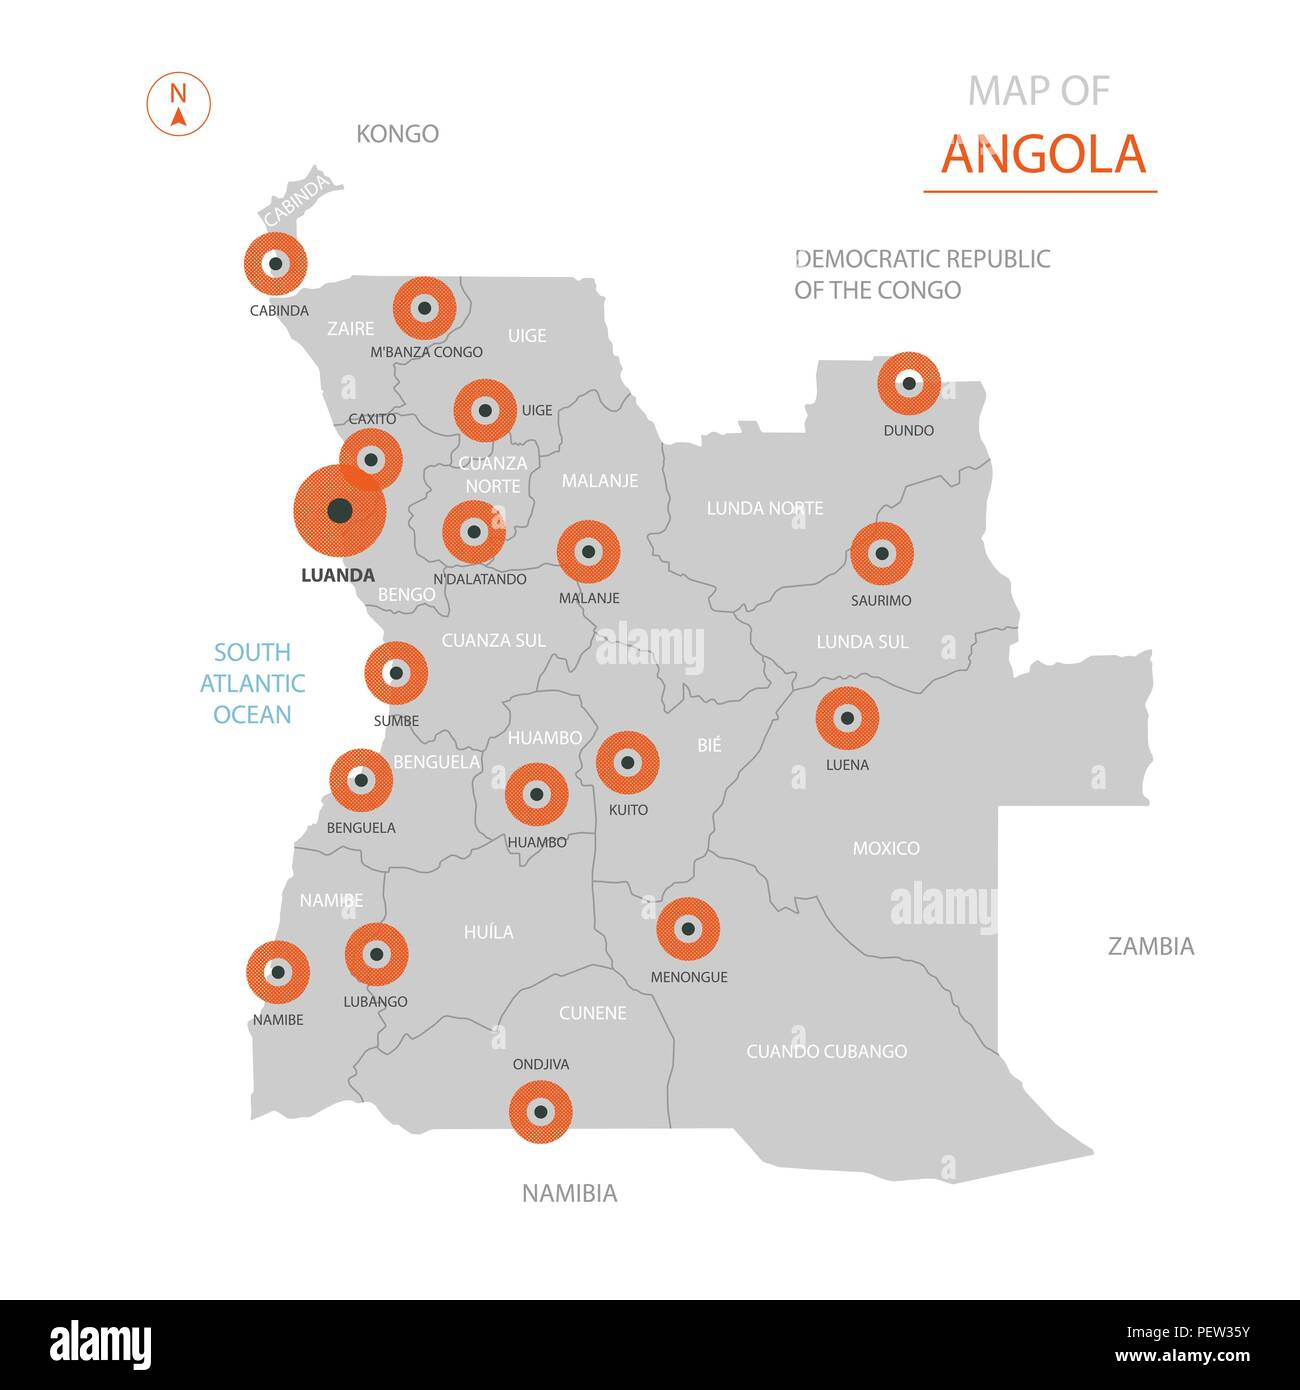 Stylized vector Angola map showing big cities, capital Luanda, administrative divisions. - Stock Vector